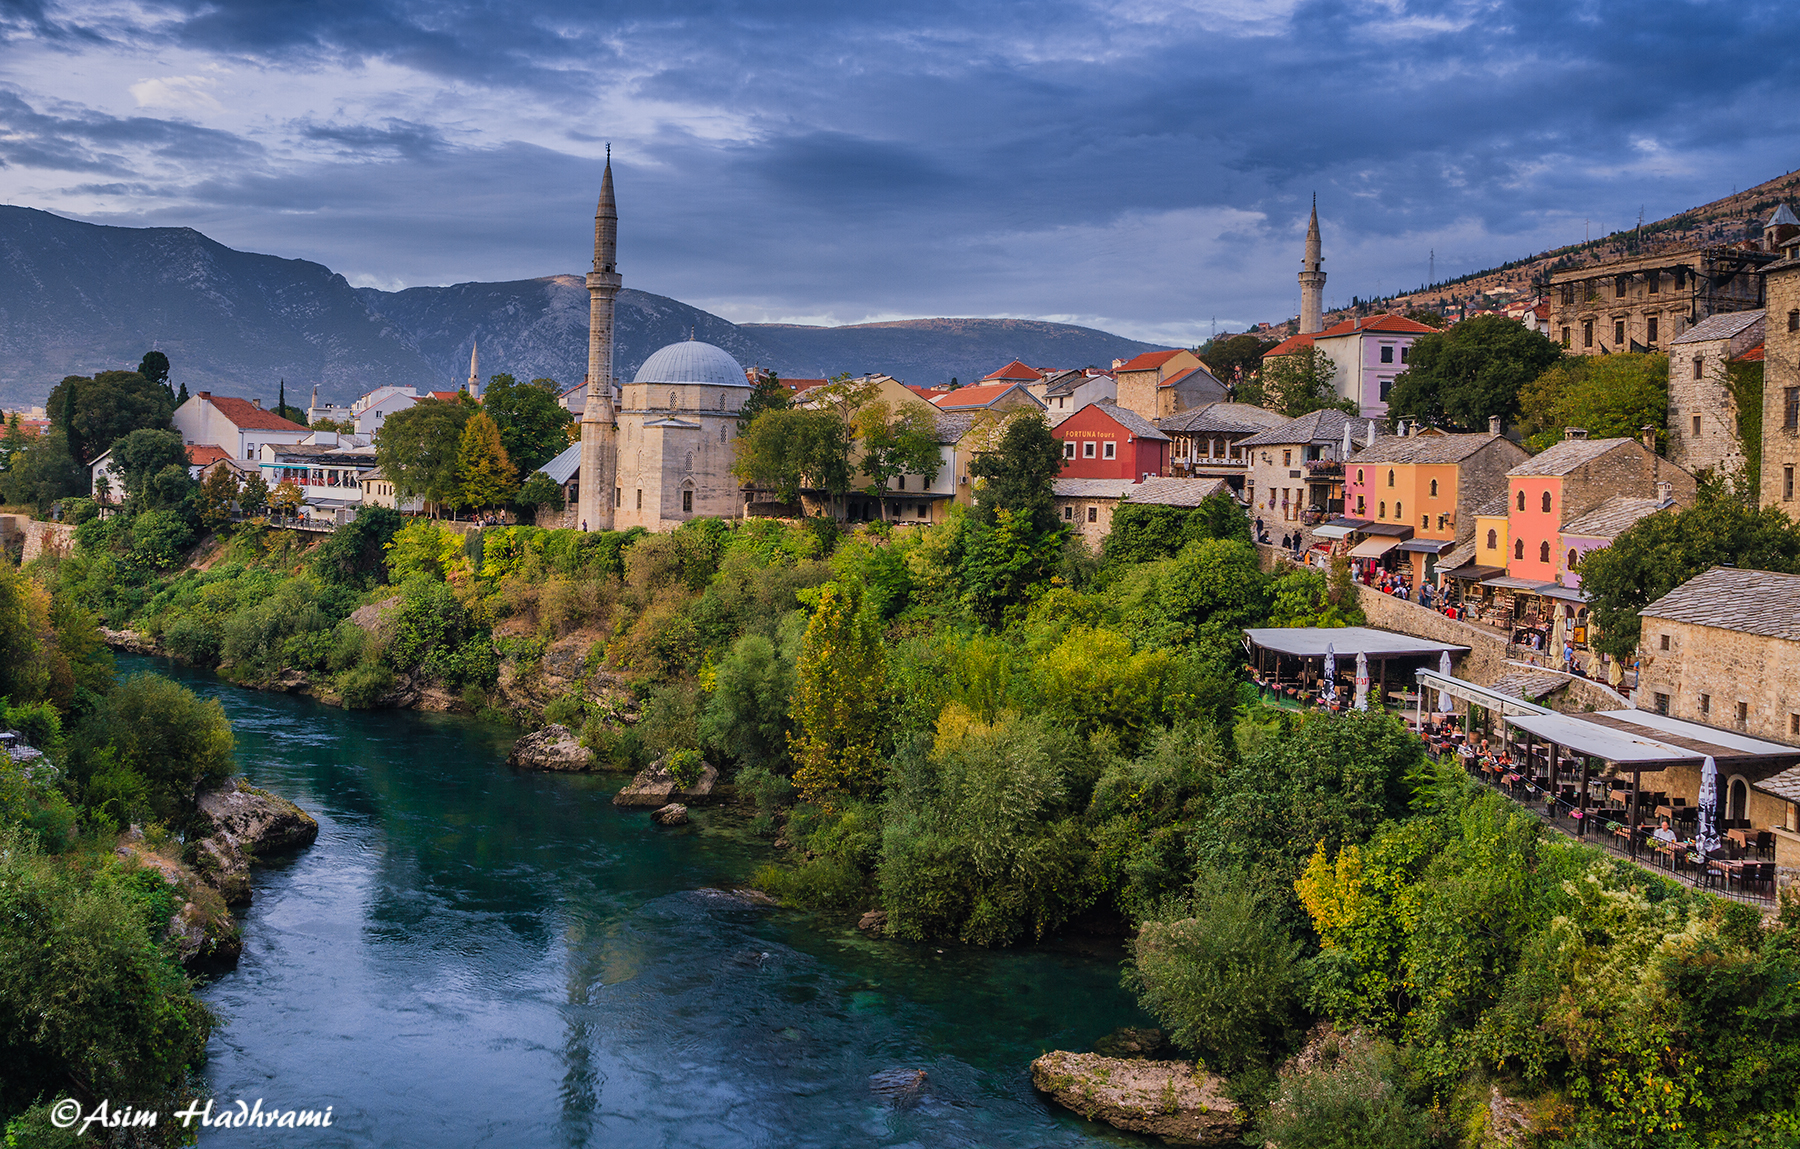 View of Mostar from the Old Bridge, Bosnia and Herzegovina